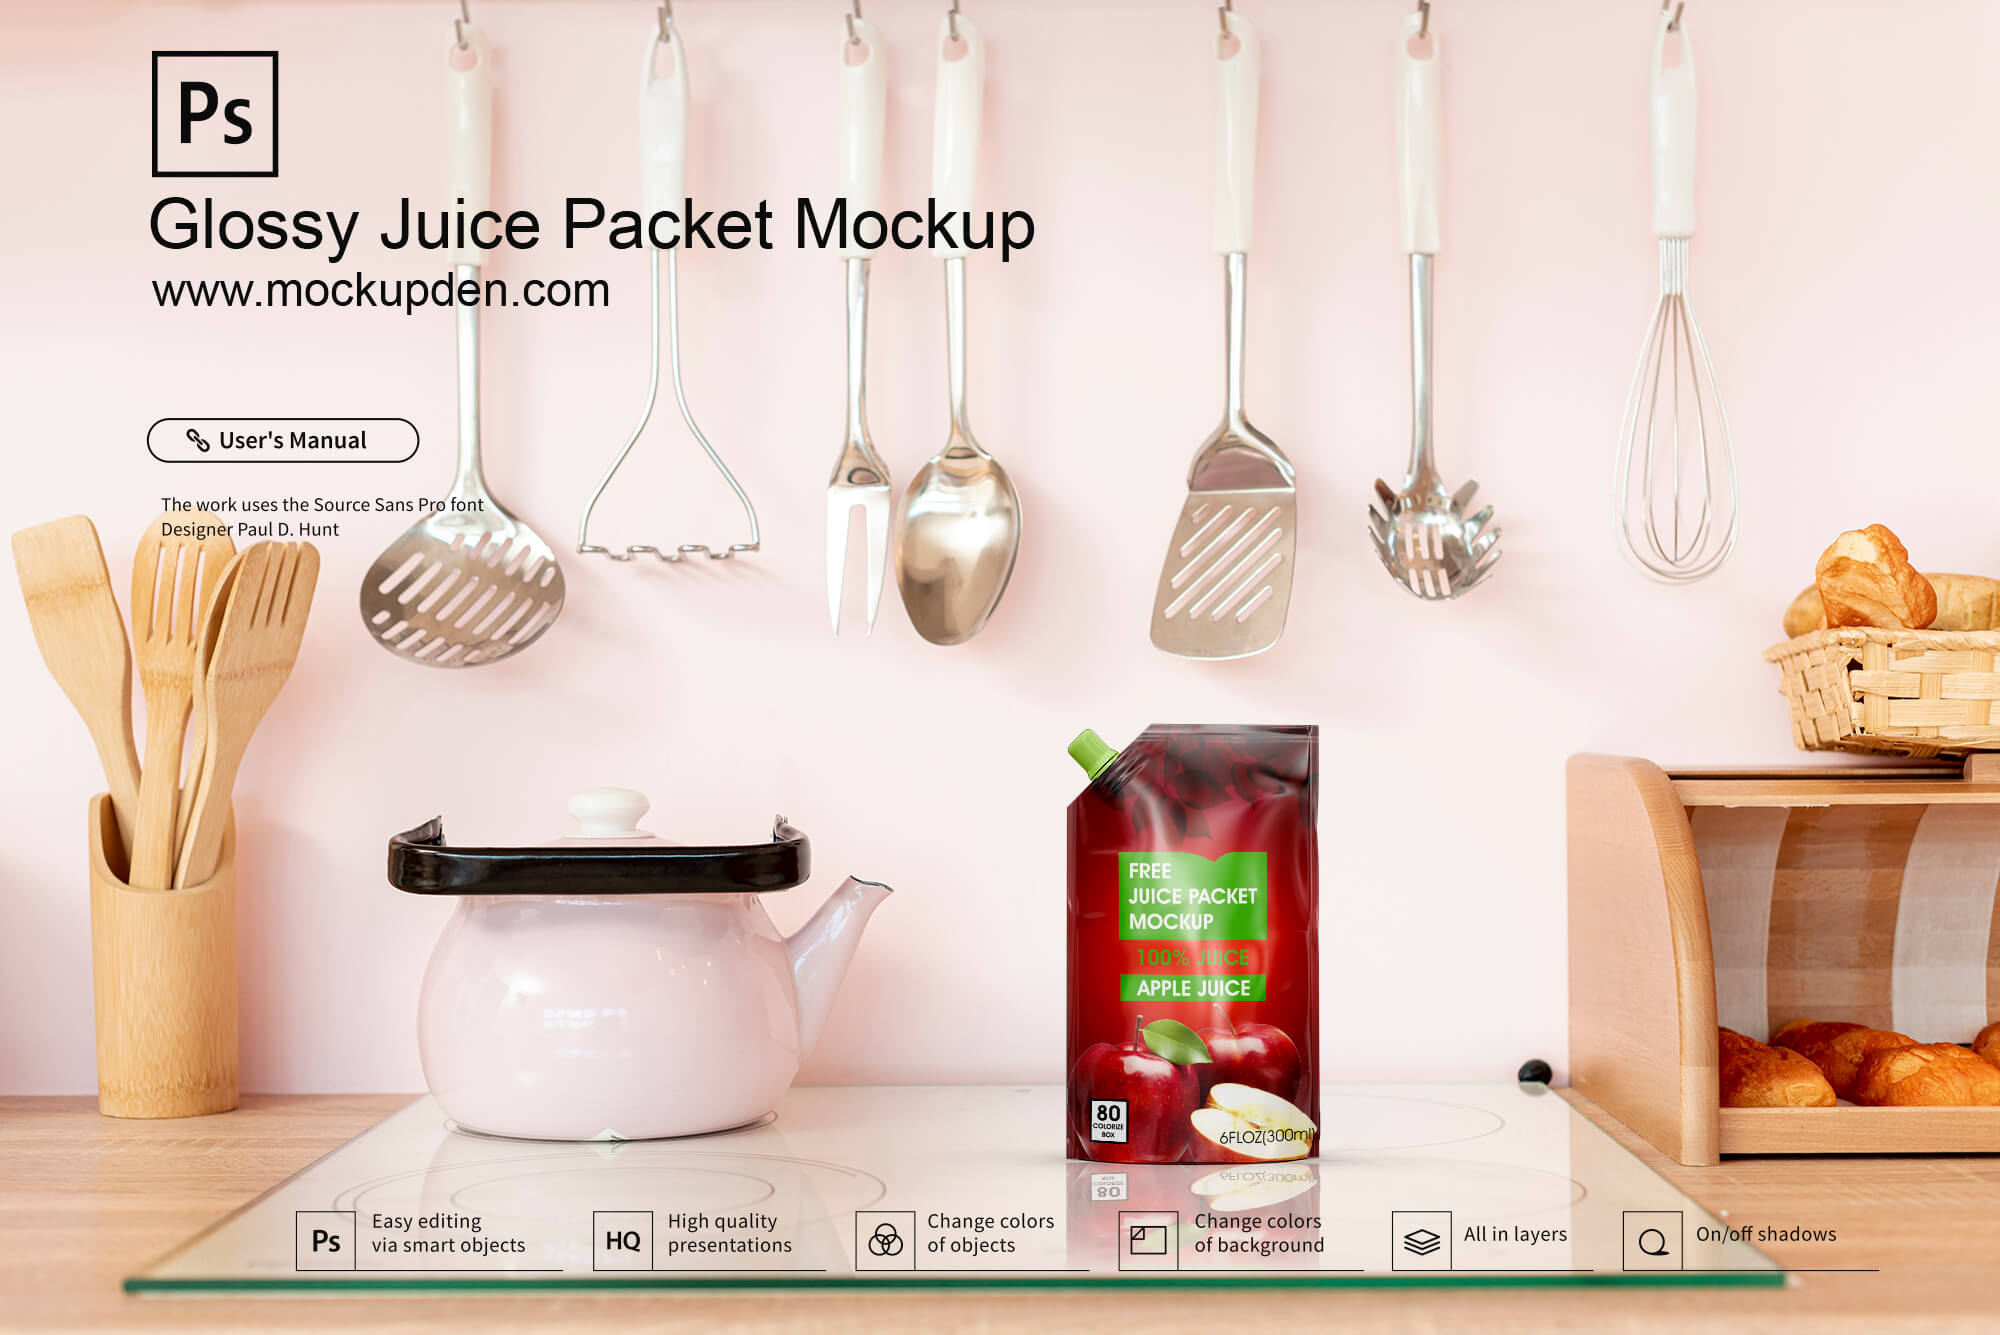 Free Glossy Juice Packet Mockup PSD Template